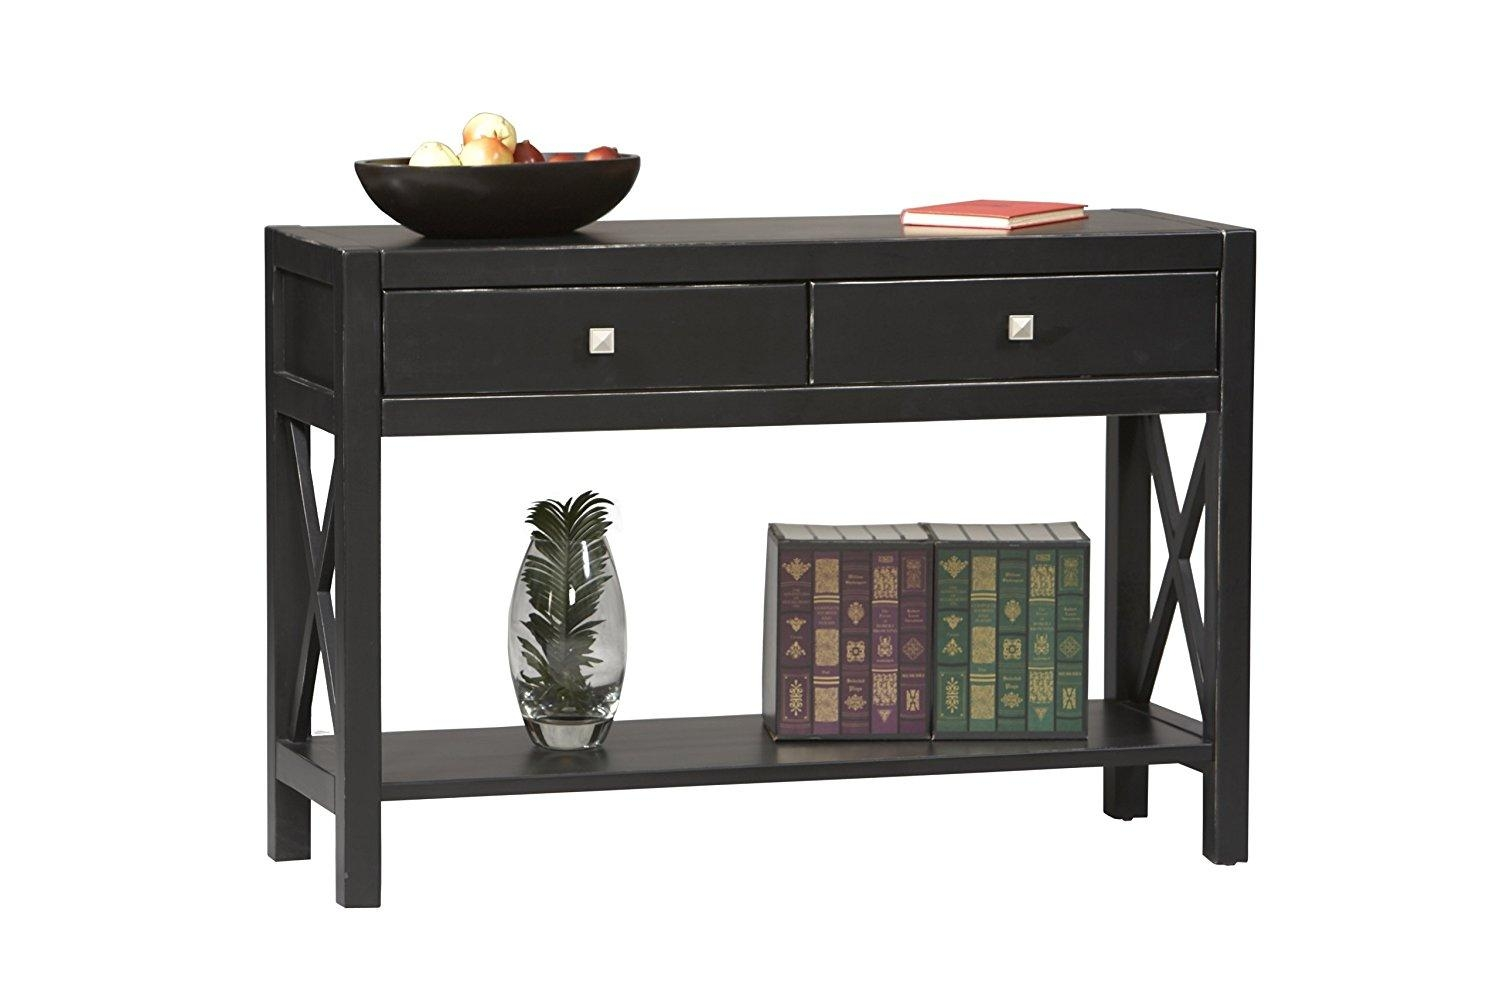 Black Sofa Table With Drawers – Video And Photos | Madlonsbigbear Inside Sofa Table Drawers (View 17 of 20)